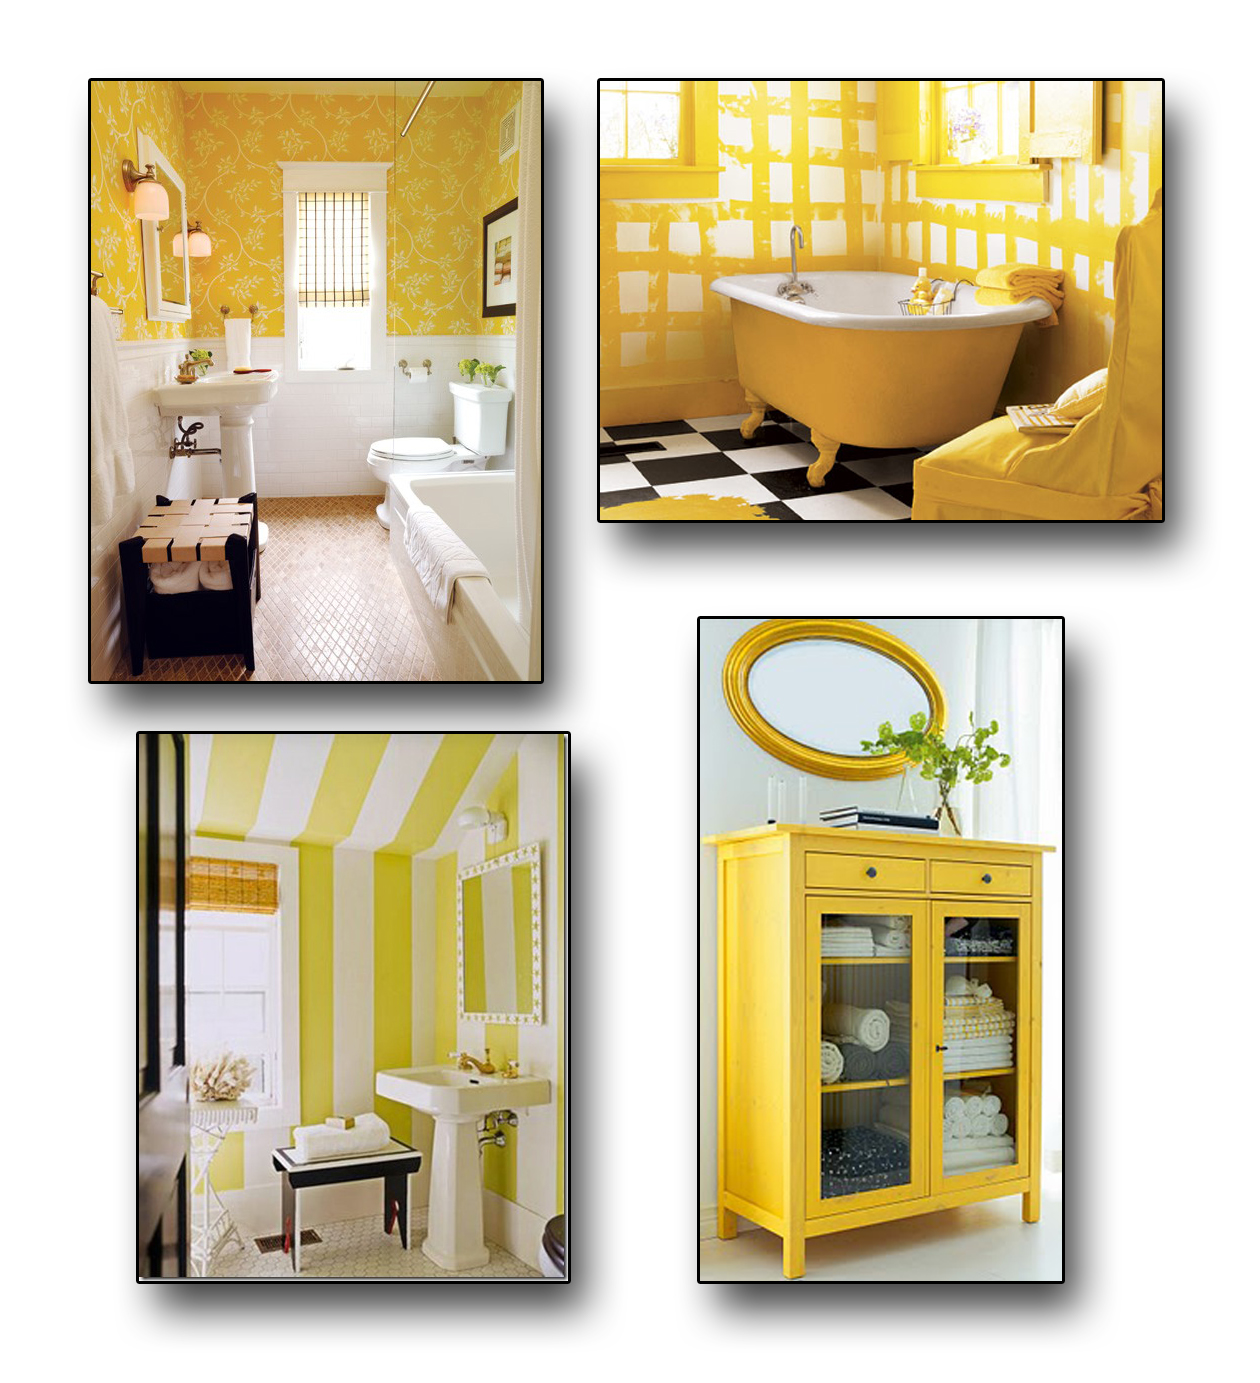 yellow and gray bathroom decor house made of paper. Black Bedroom Furniture Sets. Home Design Ideas